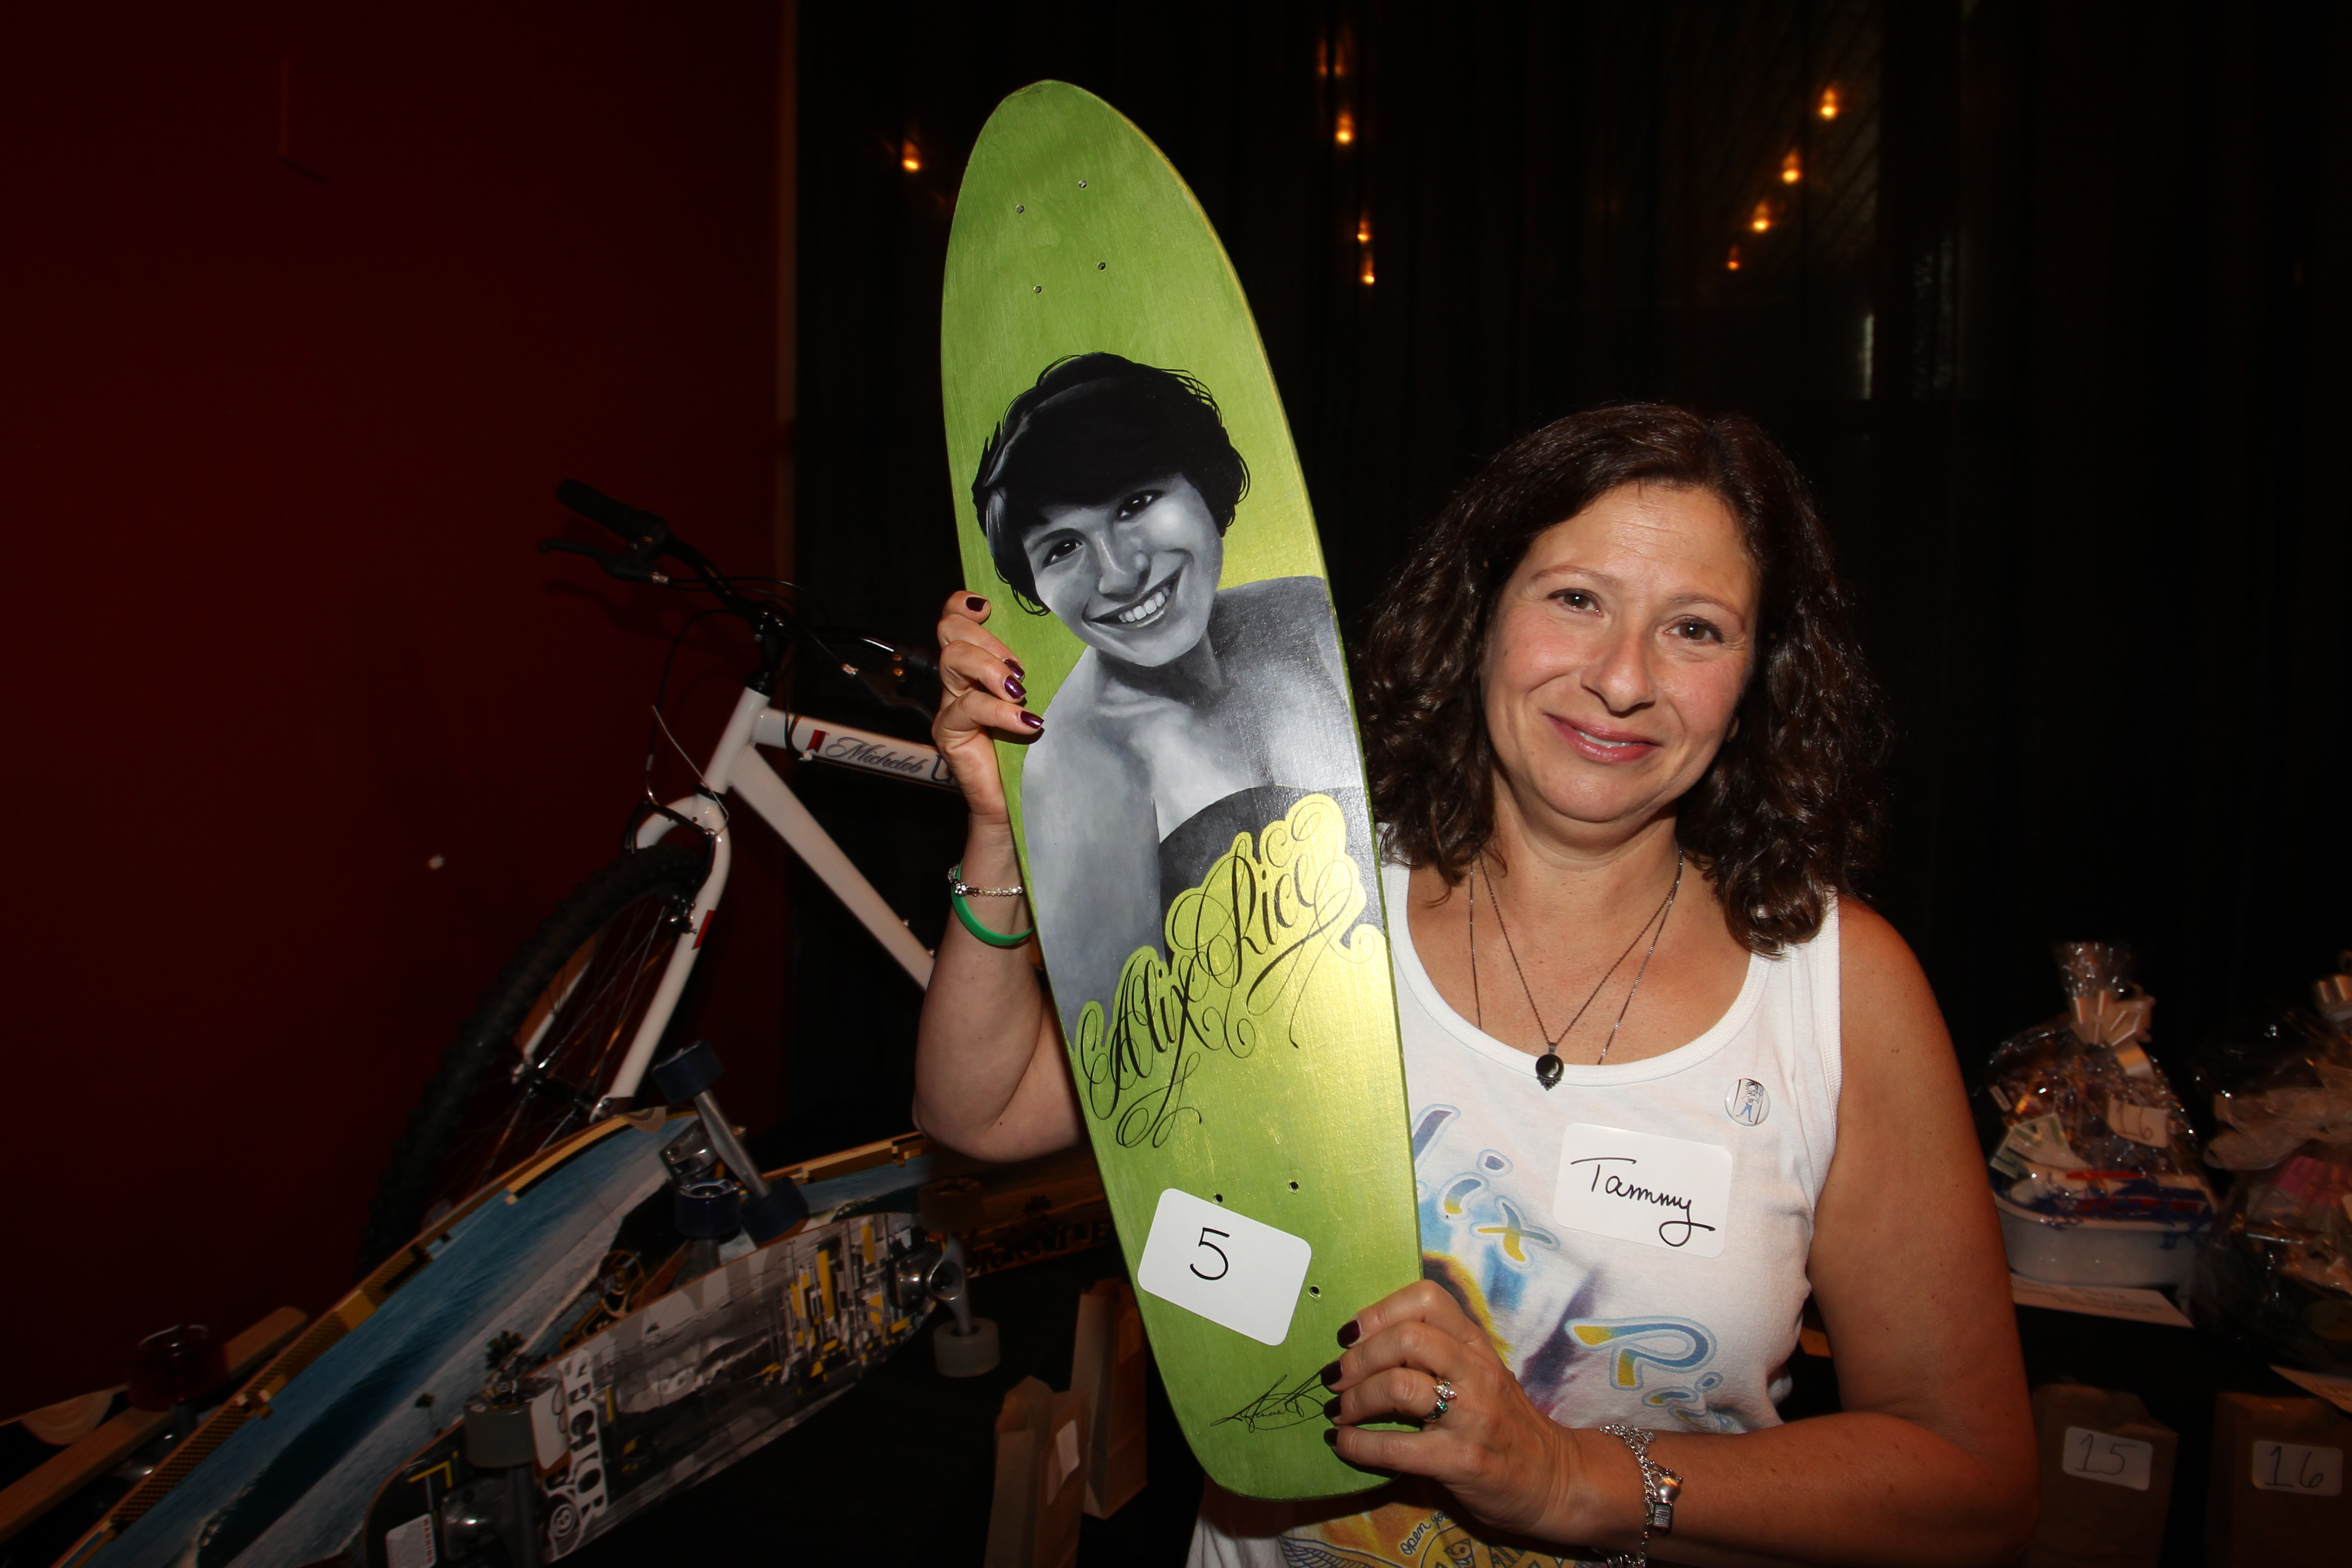 Tammy Zekas holds up a skateboard with an image of her daughter, Alexandria 'Alix' Rice, on it. The board was raffled off at a fundraiser in her daughter's name at  the Town Ballroom in Buffalo on Thursday, Oct. 18, 2012.  {James P. McCoy/Buffalo News}